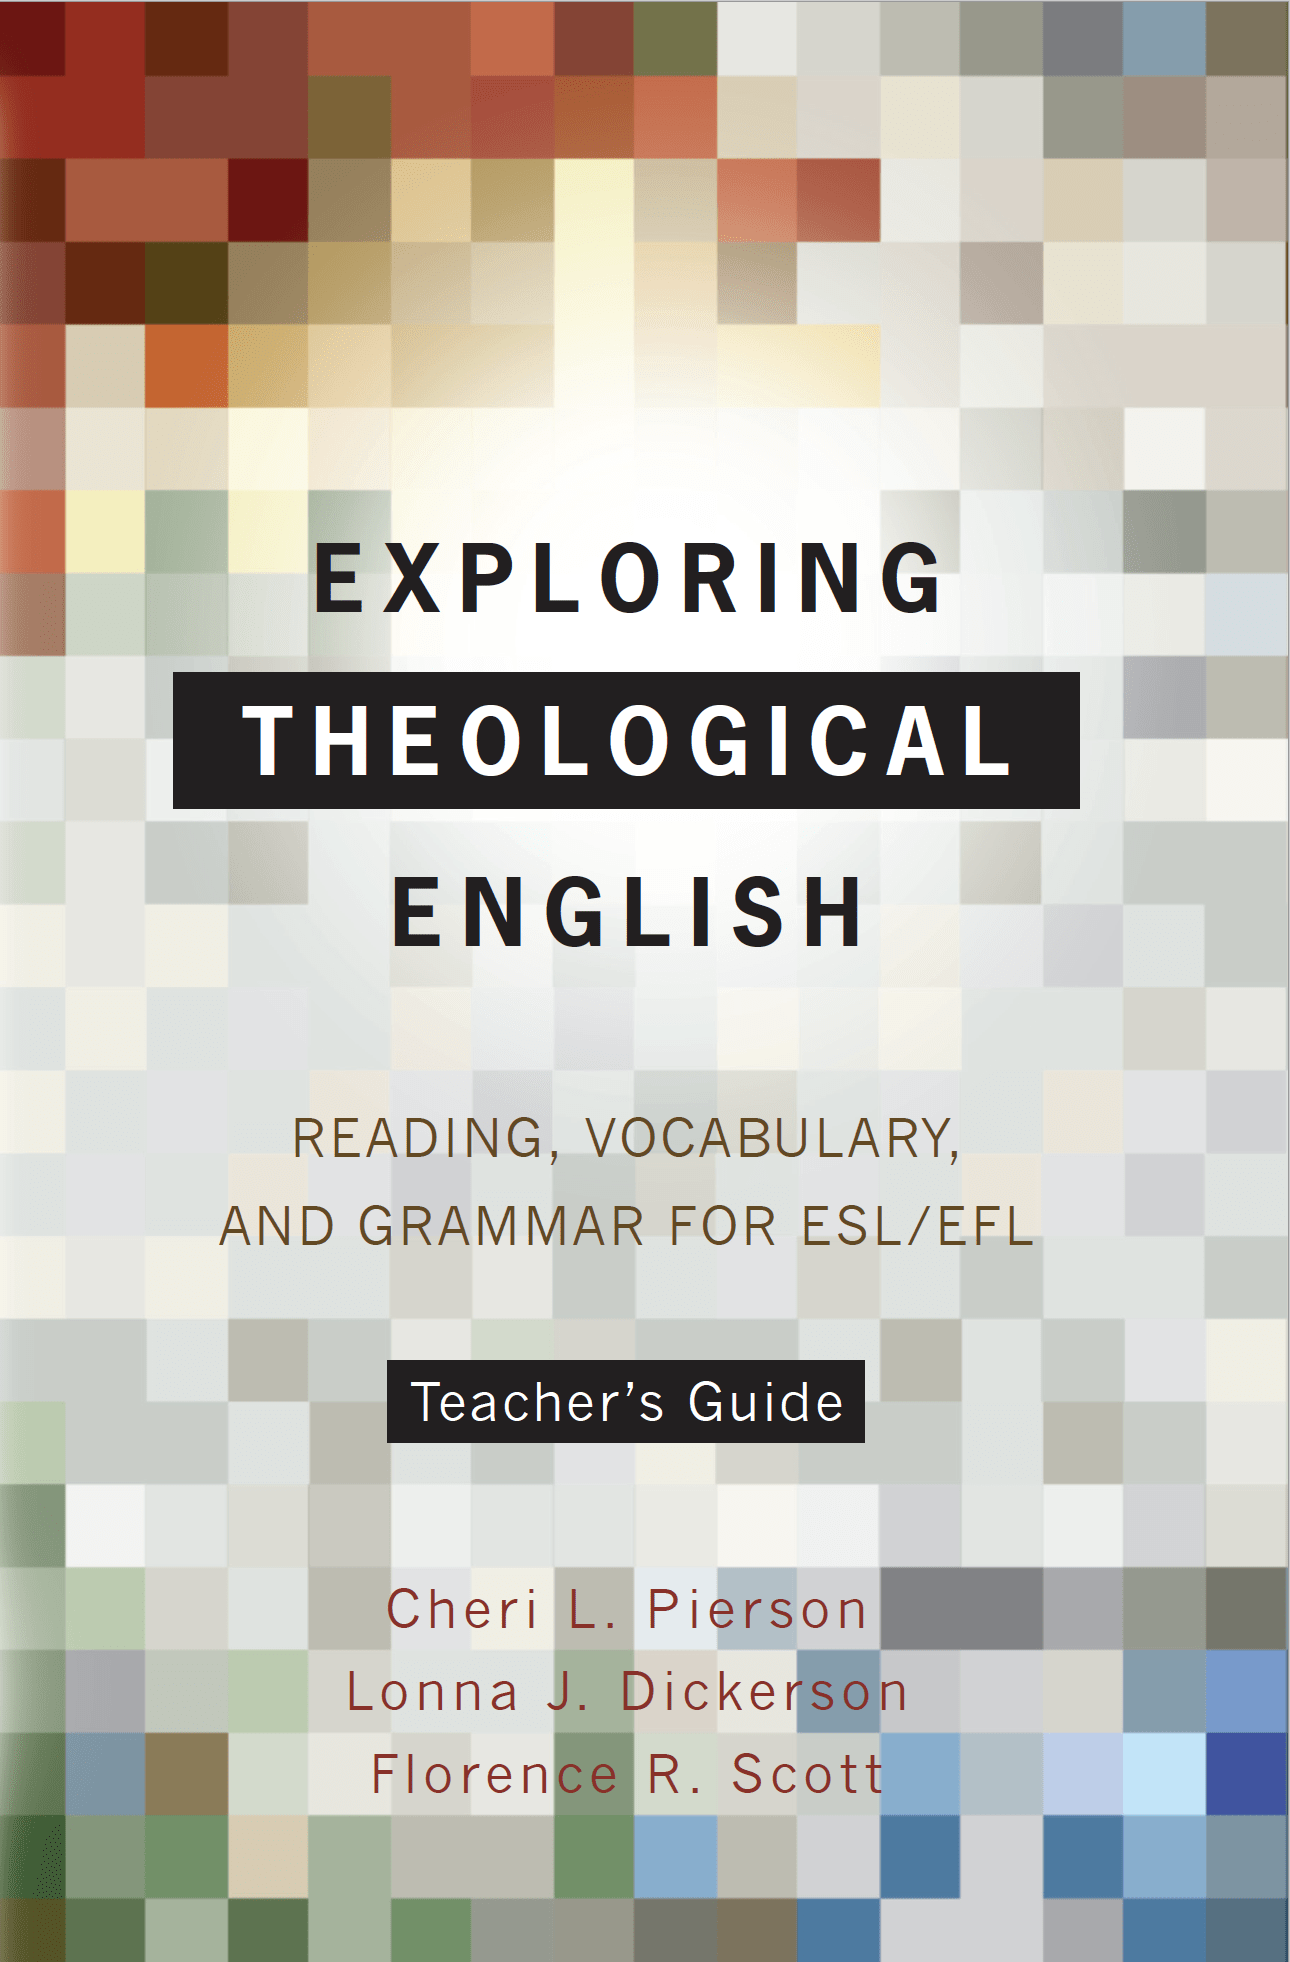 Exploring Theological English Teacher's Guide